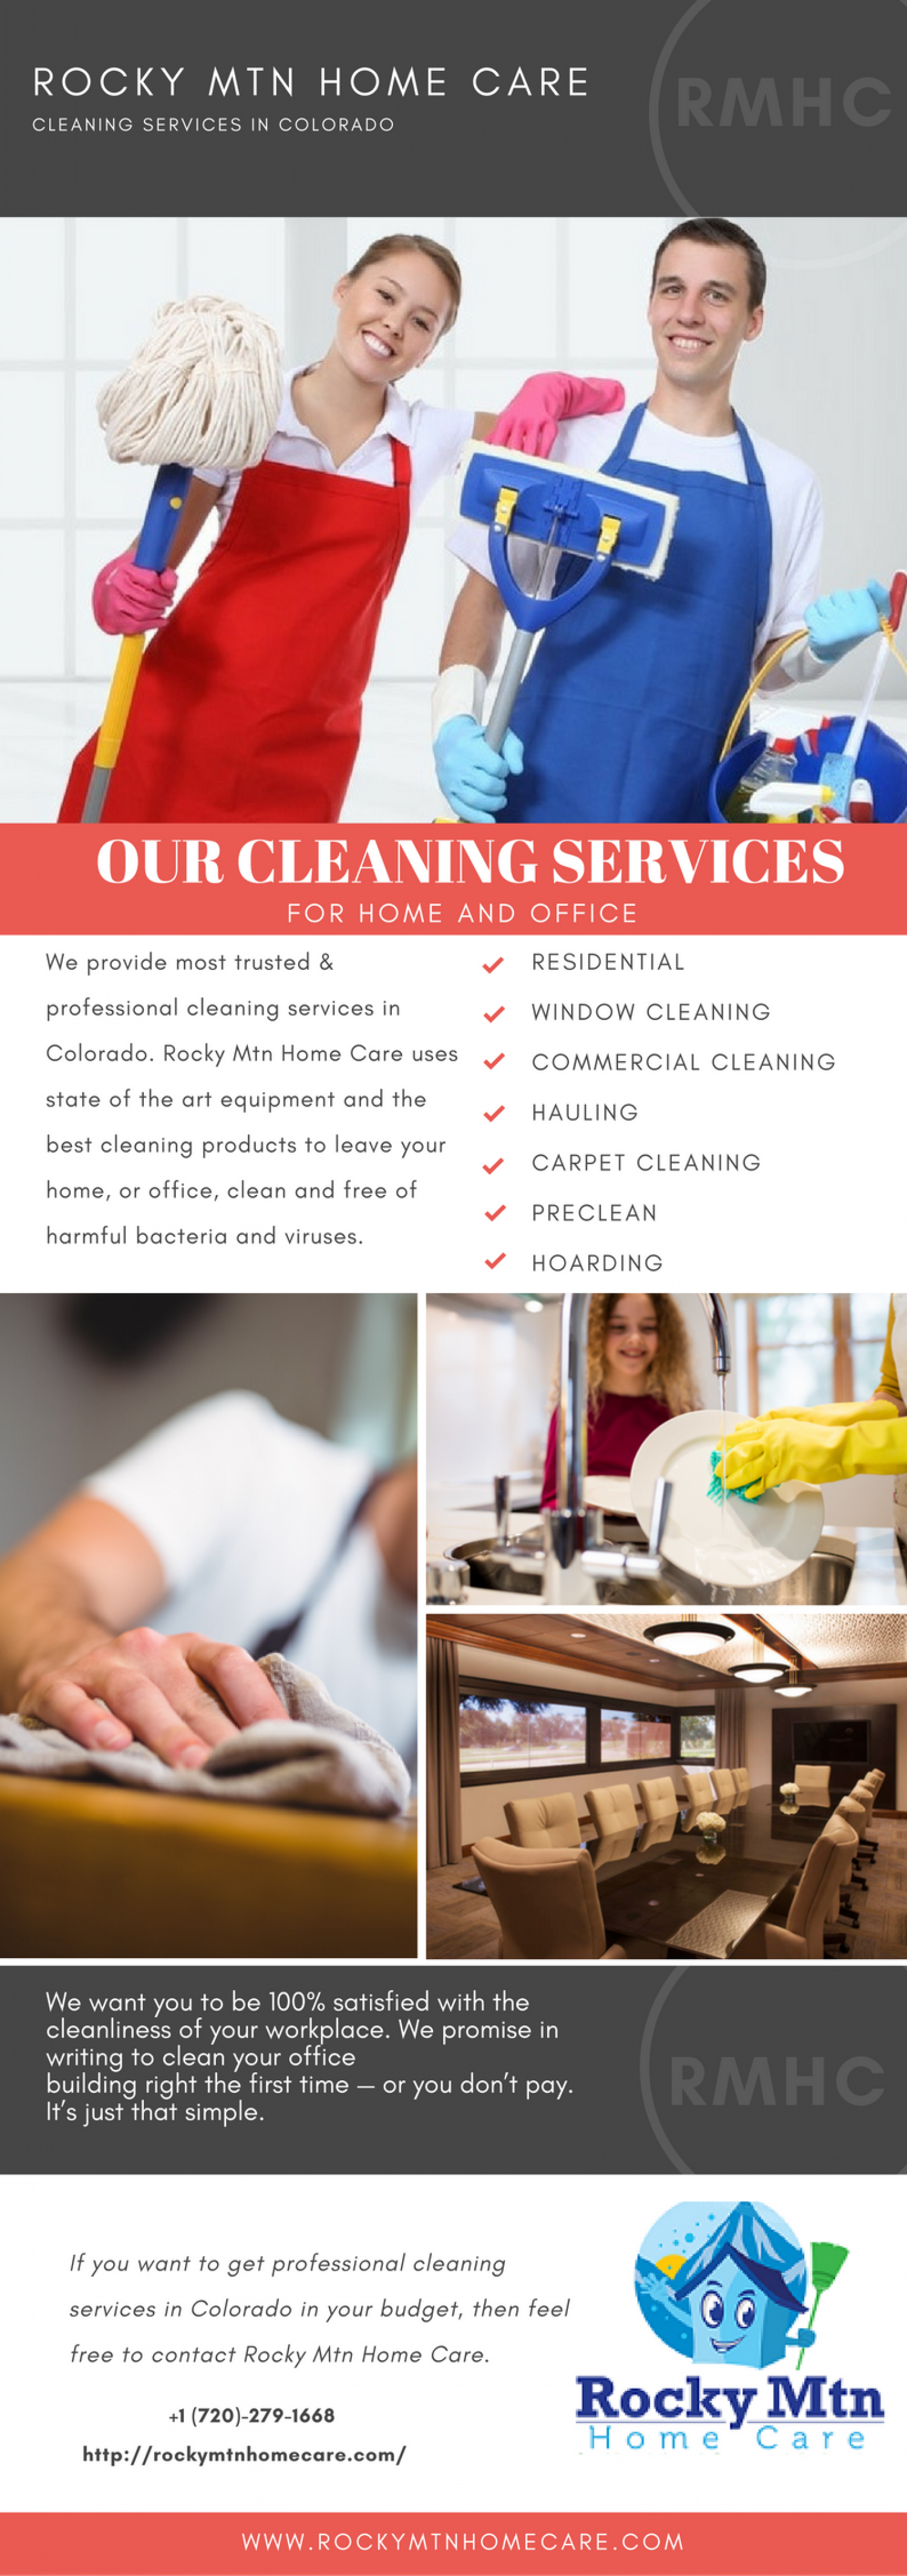 Rocky Mtn Home Care | Cleaning Service in Denver, CO Infographic